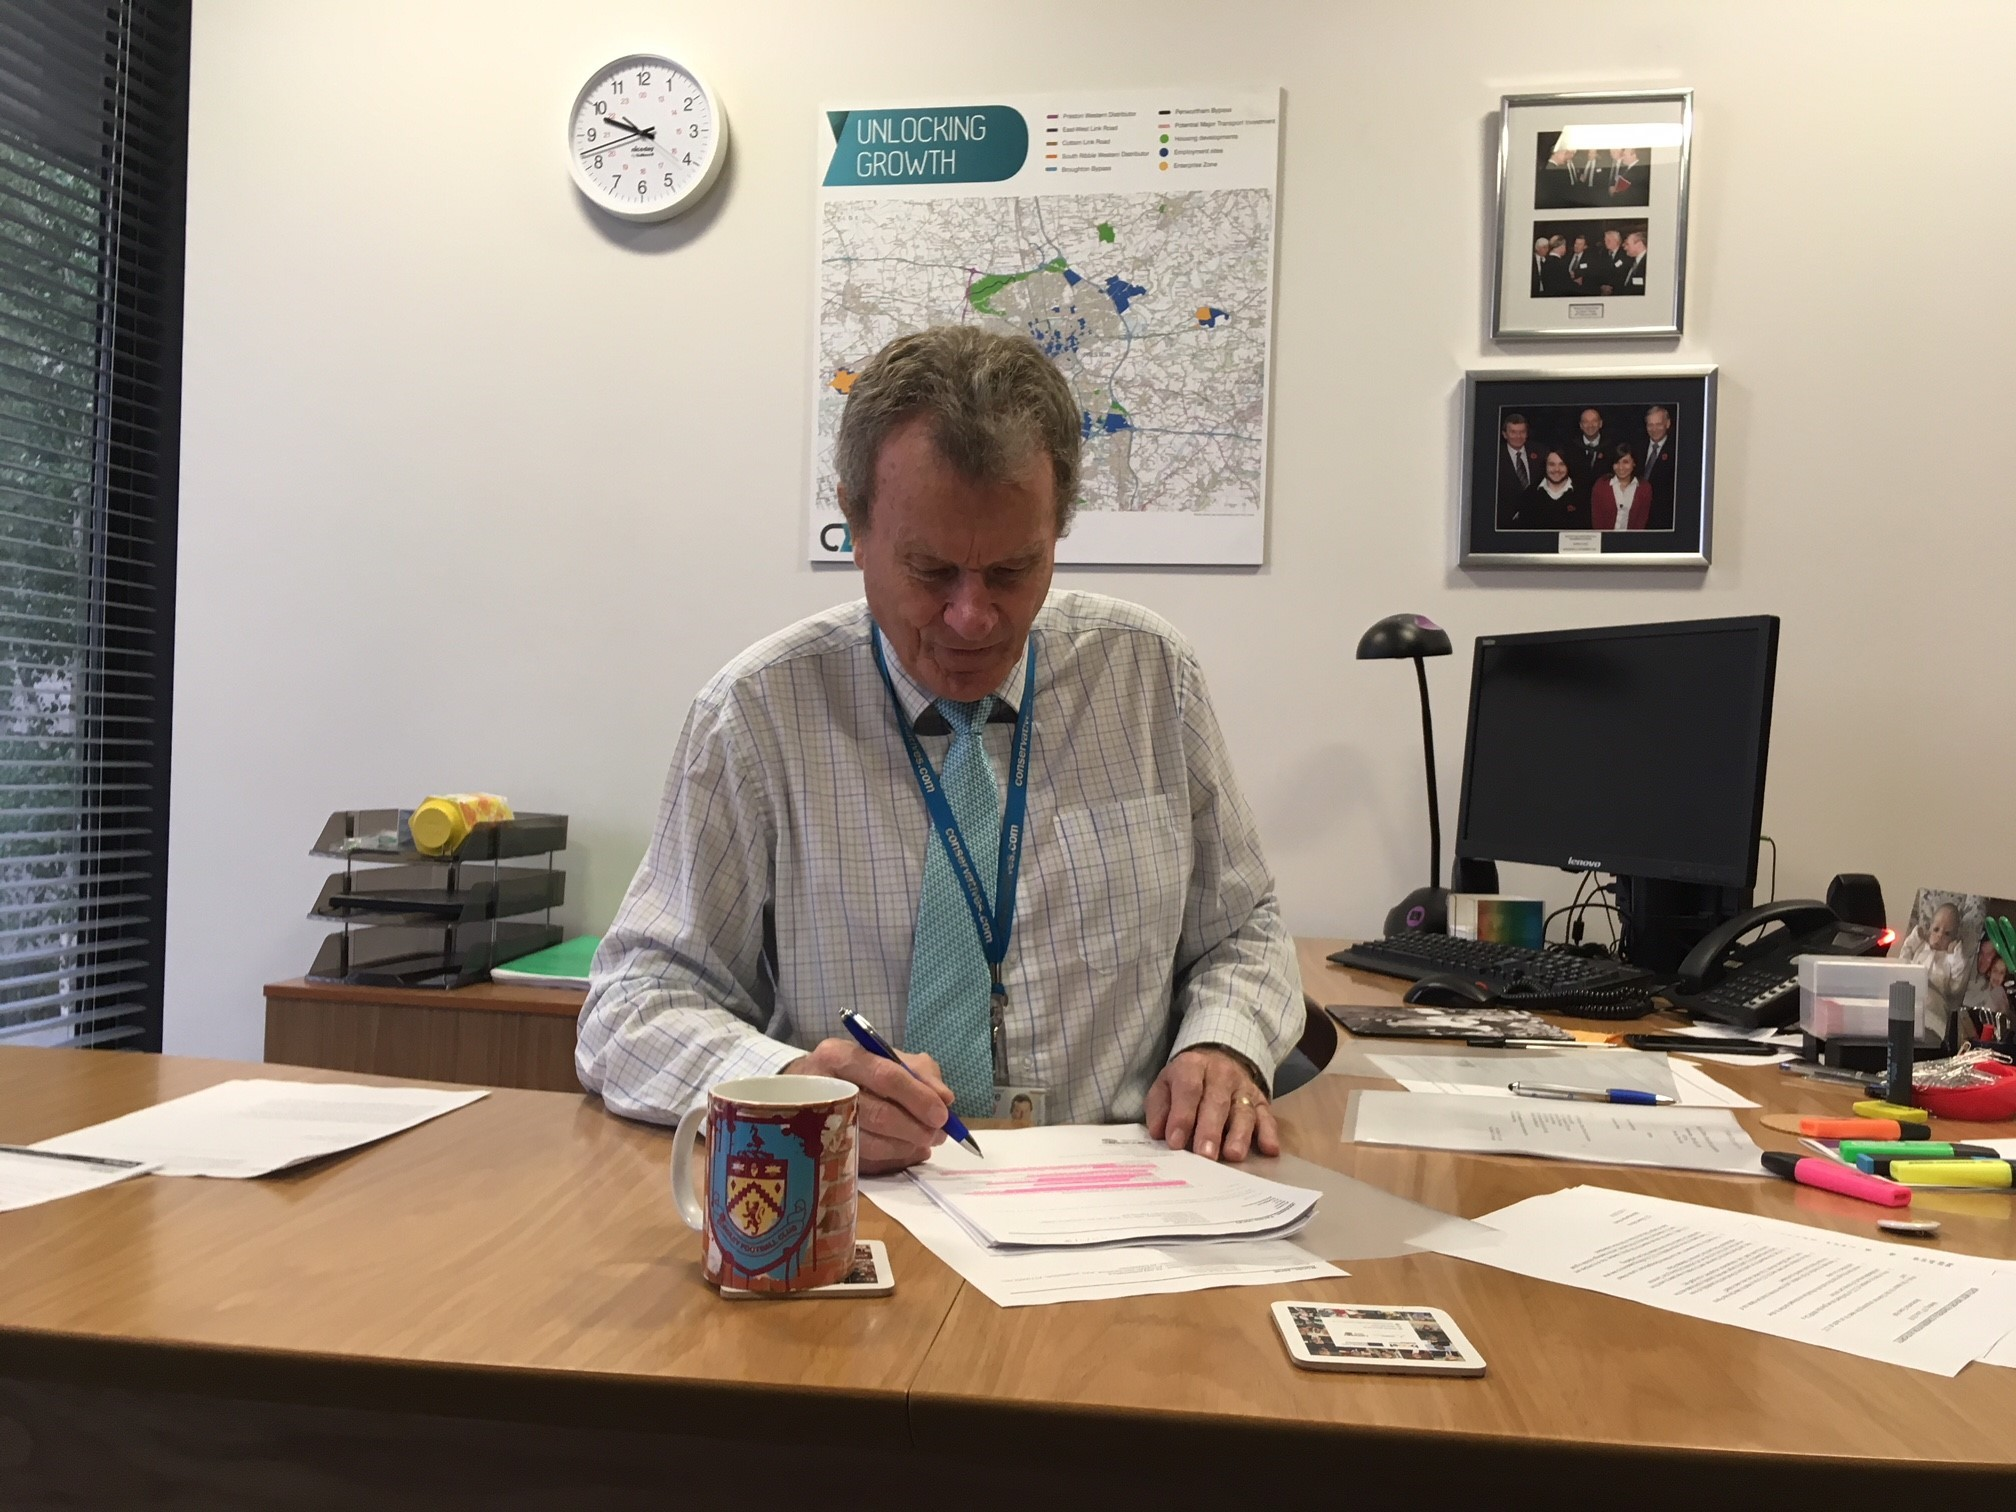 Geoff Driver at his desk with his Clarets mug and mousemat.